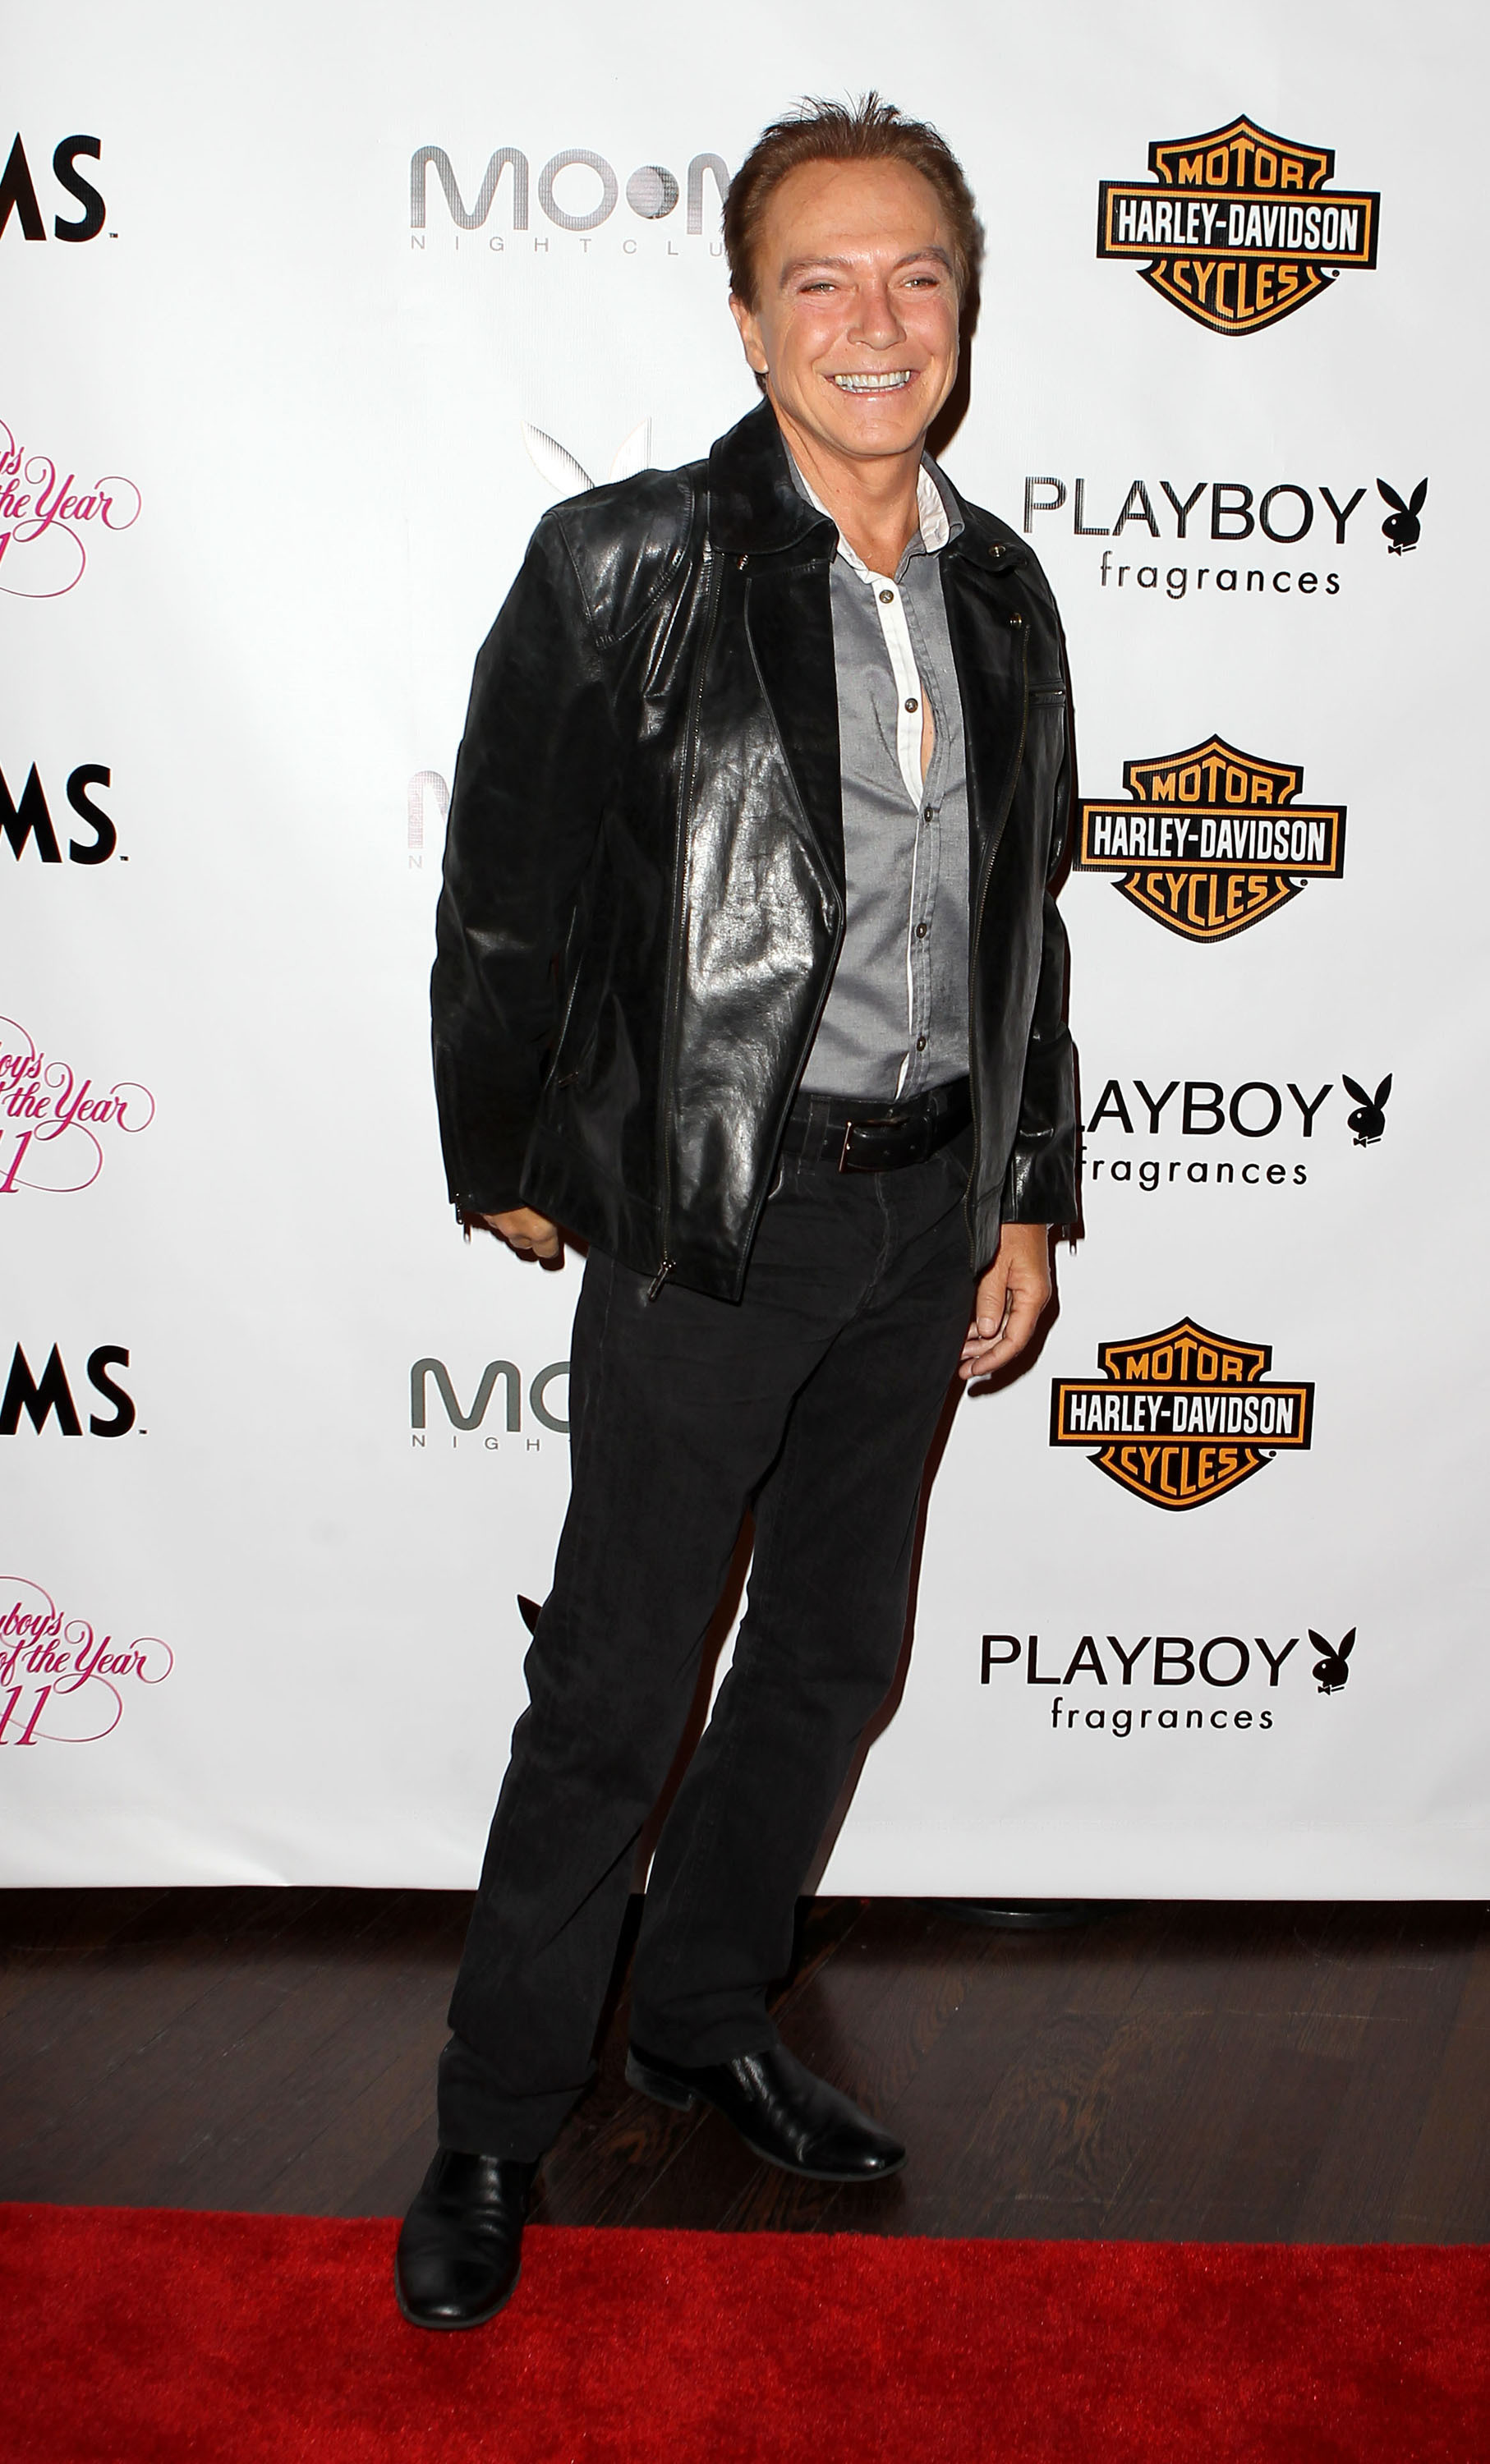 David Cassidy                  Playboys Playmate of the Year 2011at Moon Nightclub at The Palms Hotel and Casino                  Las Vegas, Nevada - 06.05.11                                    Featuring: David Cassidy                  Where: United States                  When: 06 May 2011                  Credit: WENN